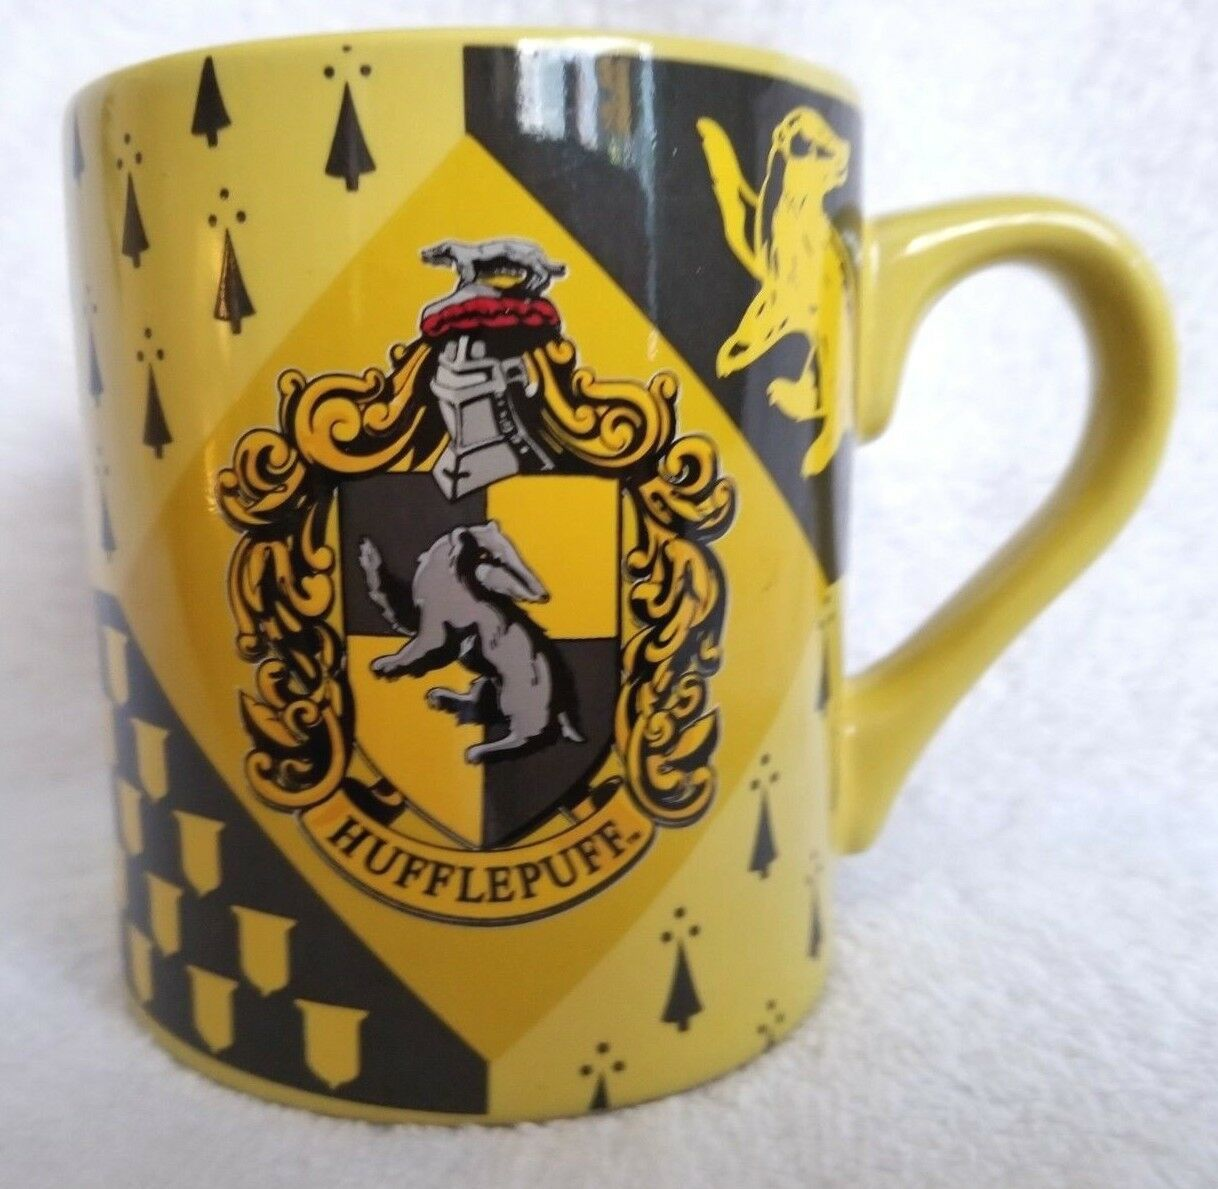 Primary image for Harry Potter Coffee Cup Mug Yellow HUFFLEPUFF Crest Shield Coat of Arms 14 Oz